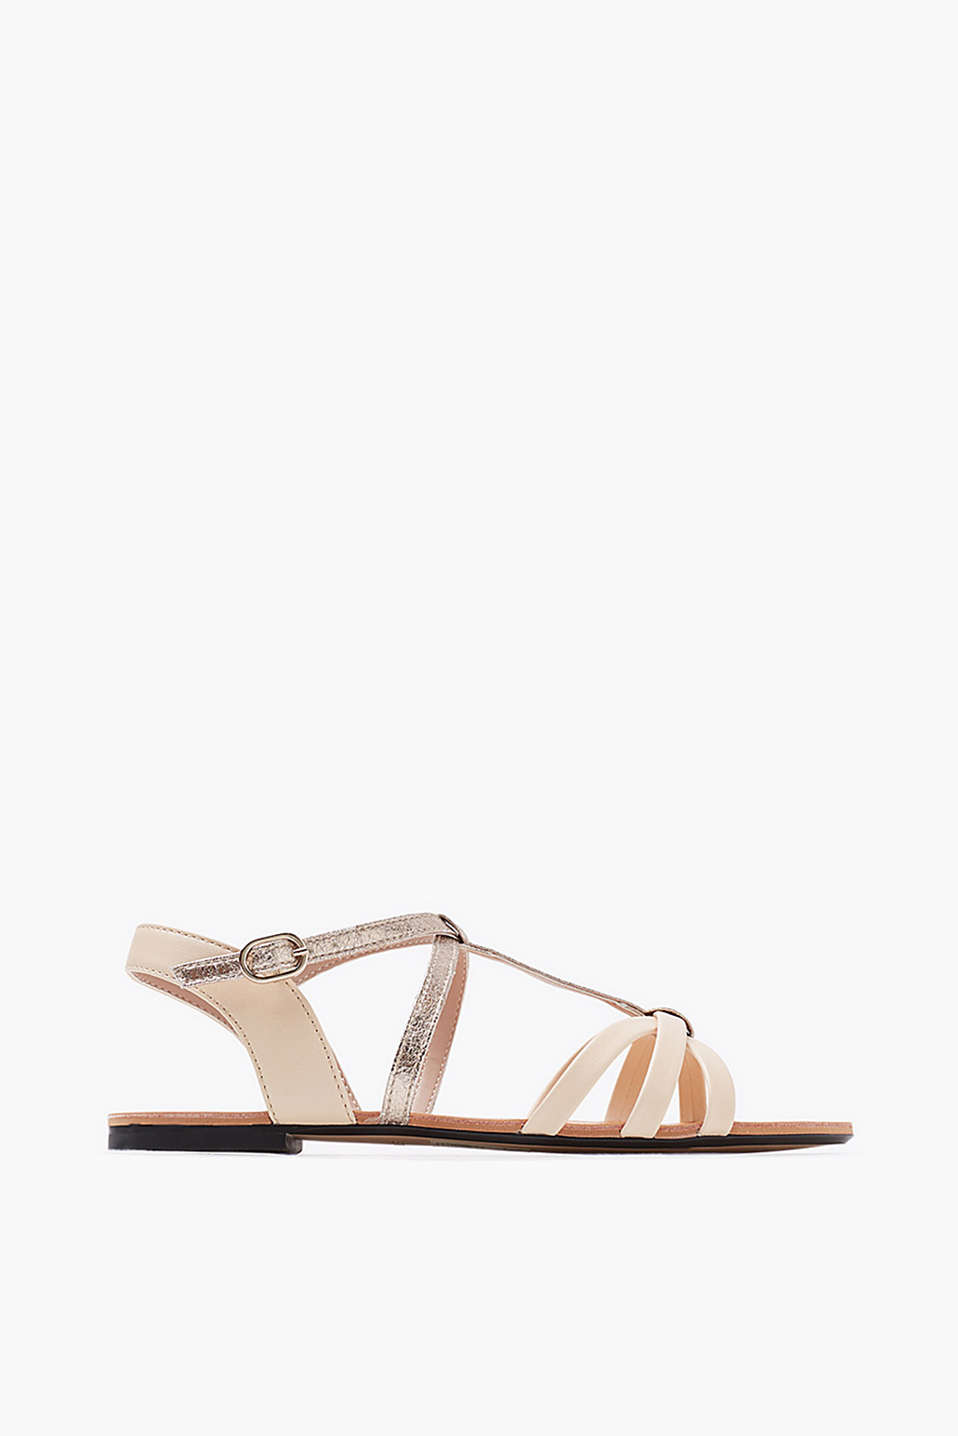 In faux leather with metallic detail: T-bar sandal with contrast slingback strap